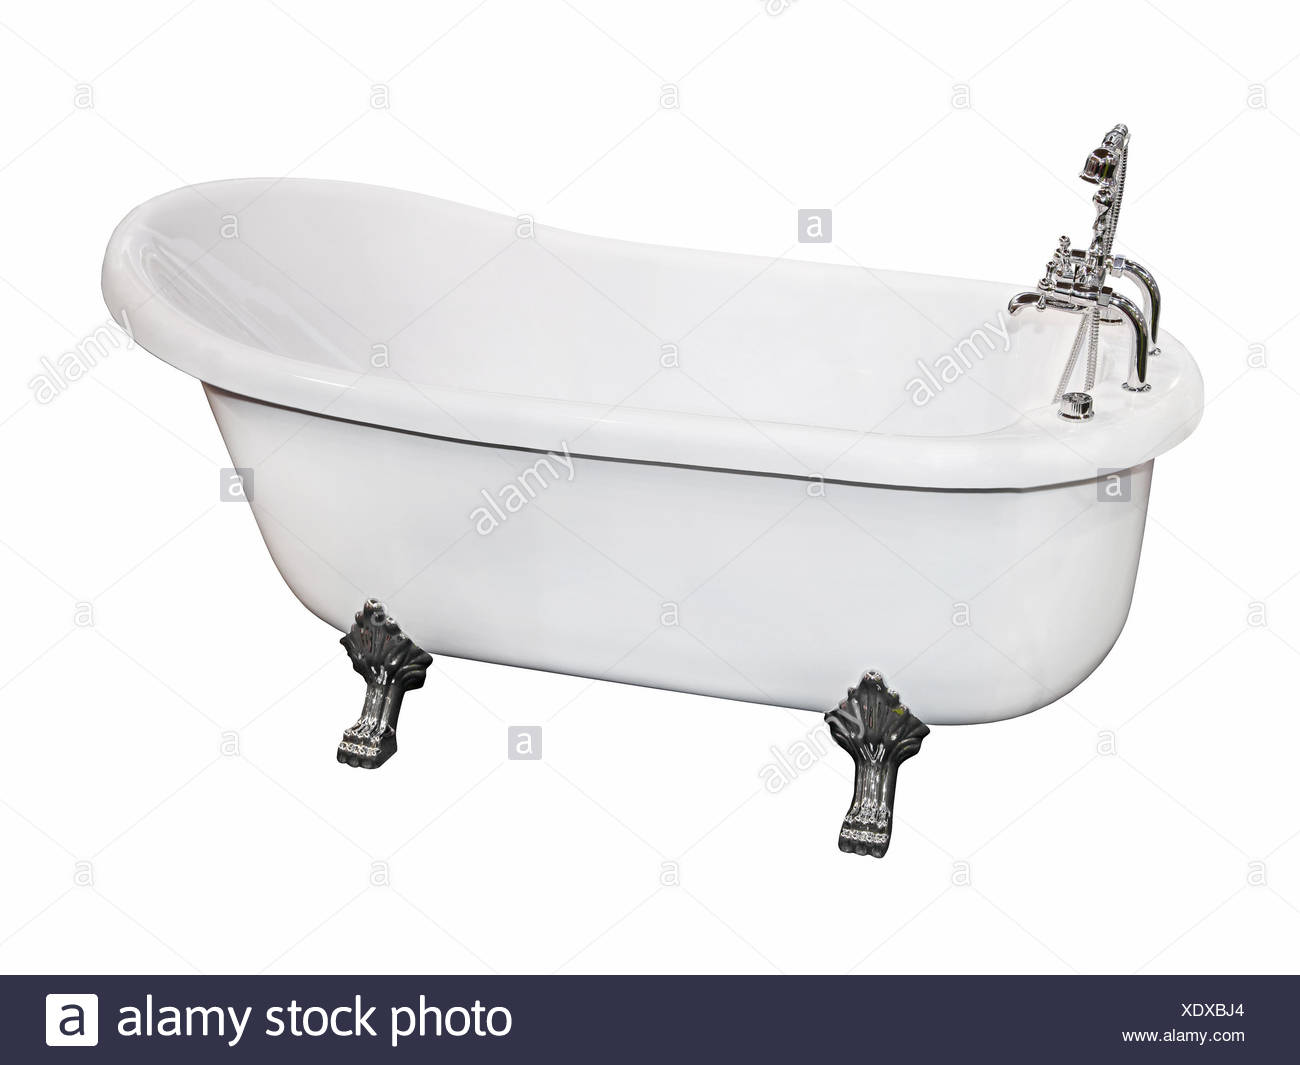 Vintage Bathtub Stock Photos & Vintage Bathtub Stock Images - Alamy